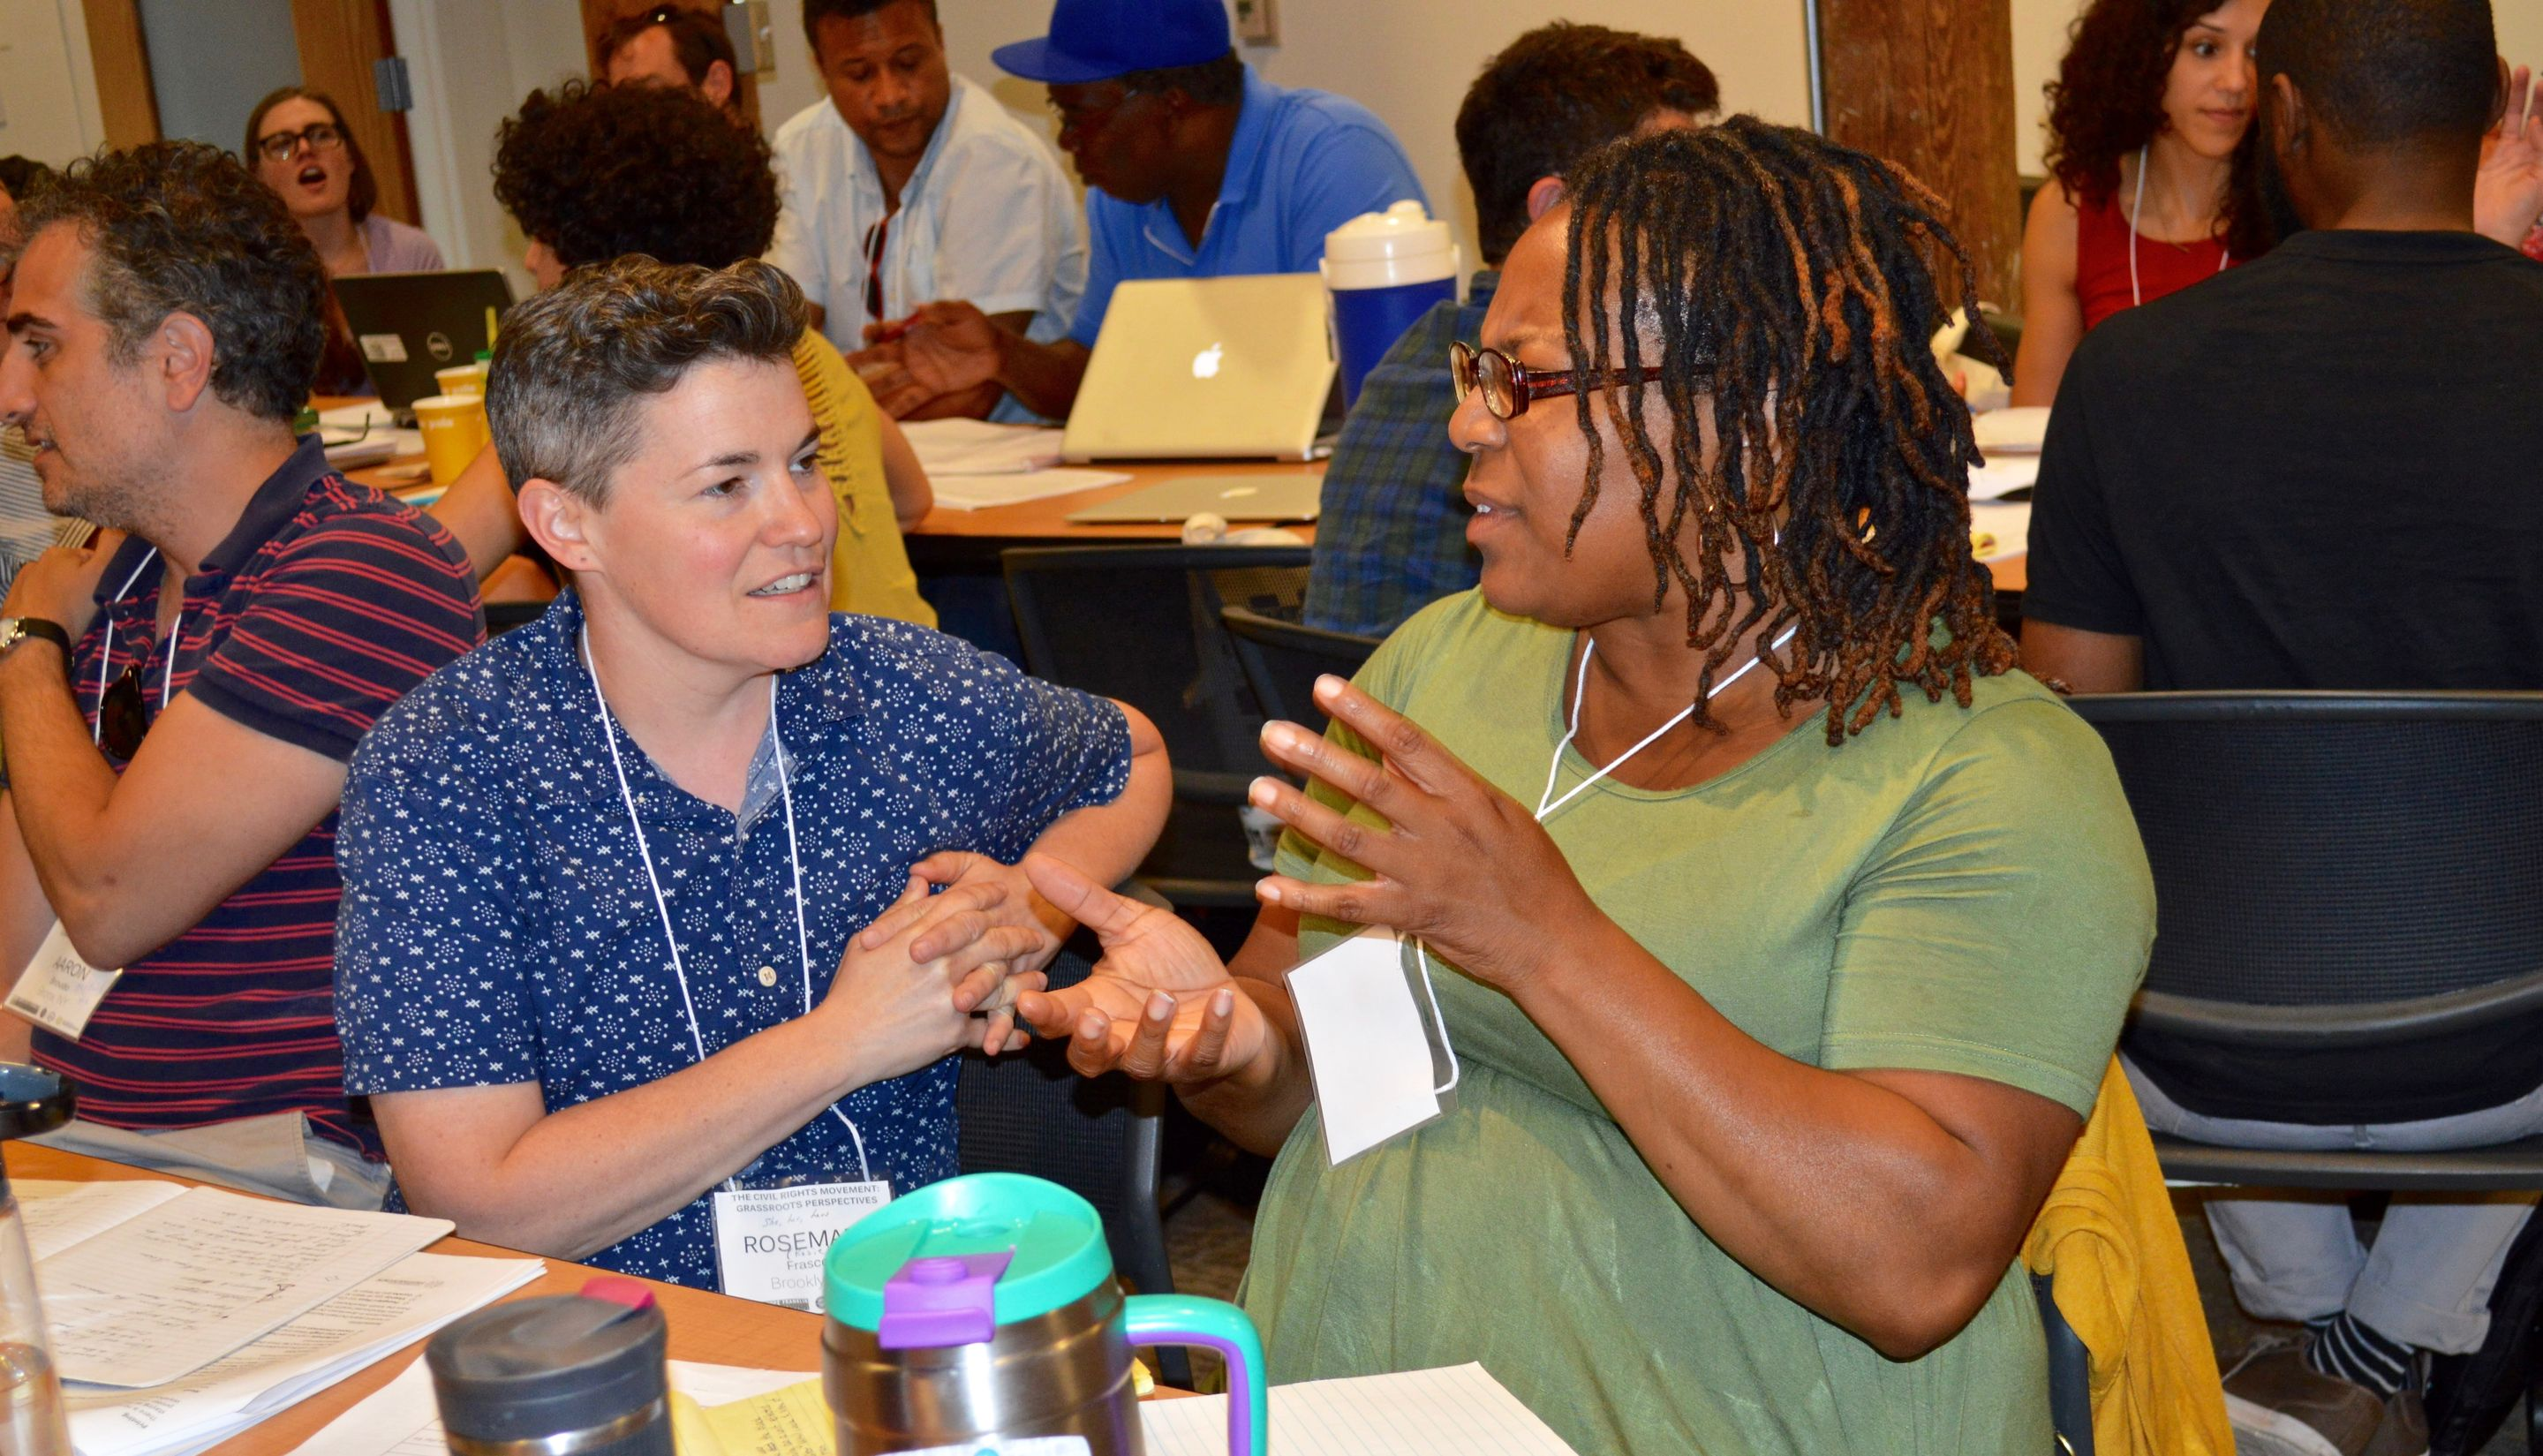 Two teachers discuss lessons at the summer institute.